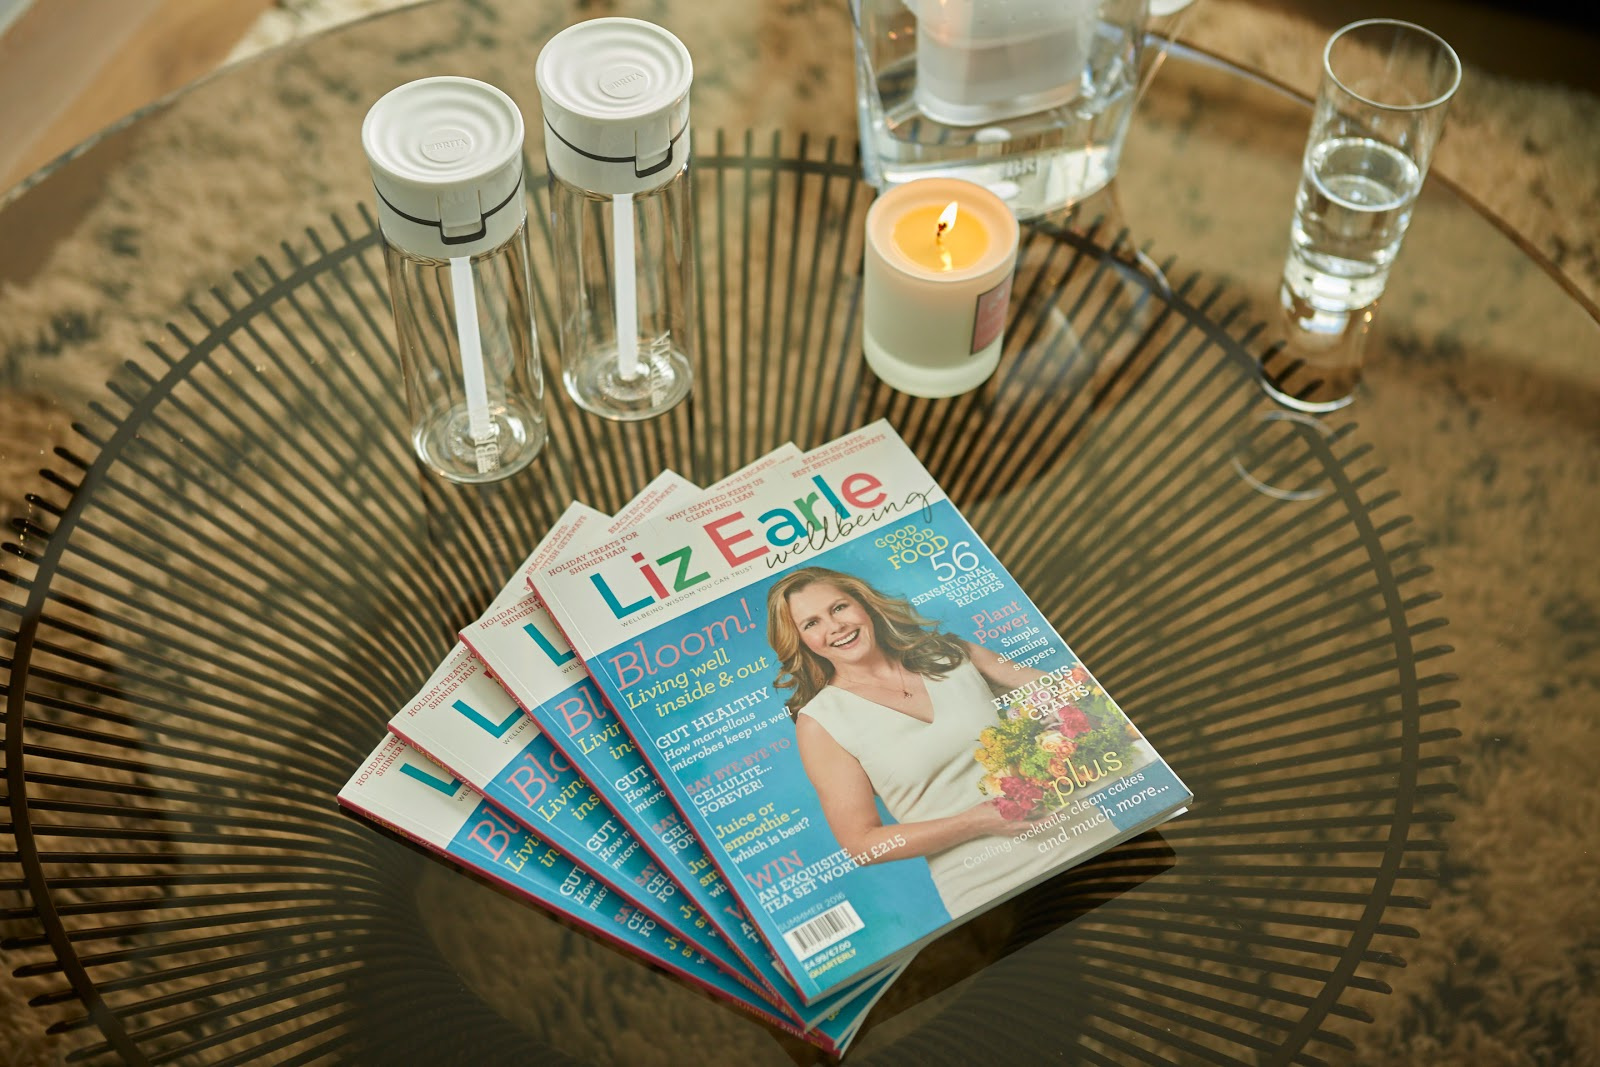 The Wellbeing Power Hour With Liz Earle x BRITA